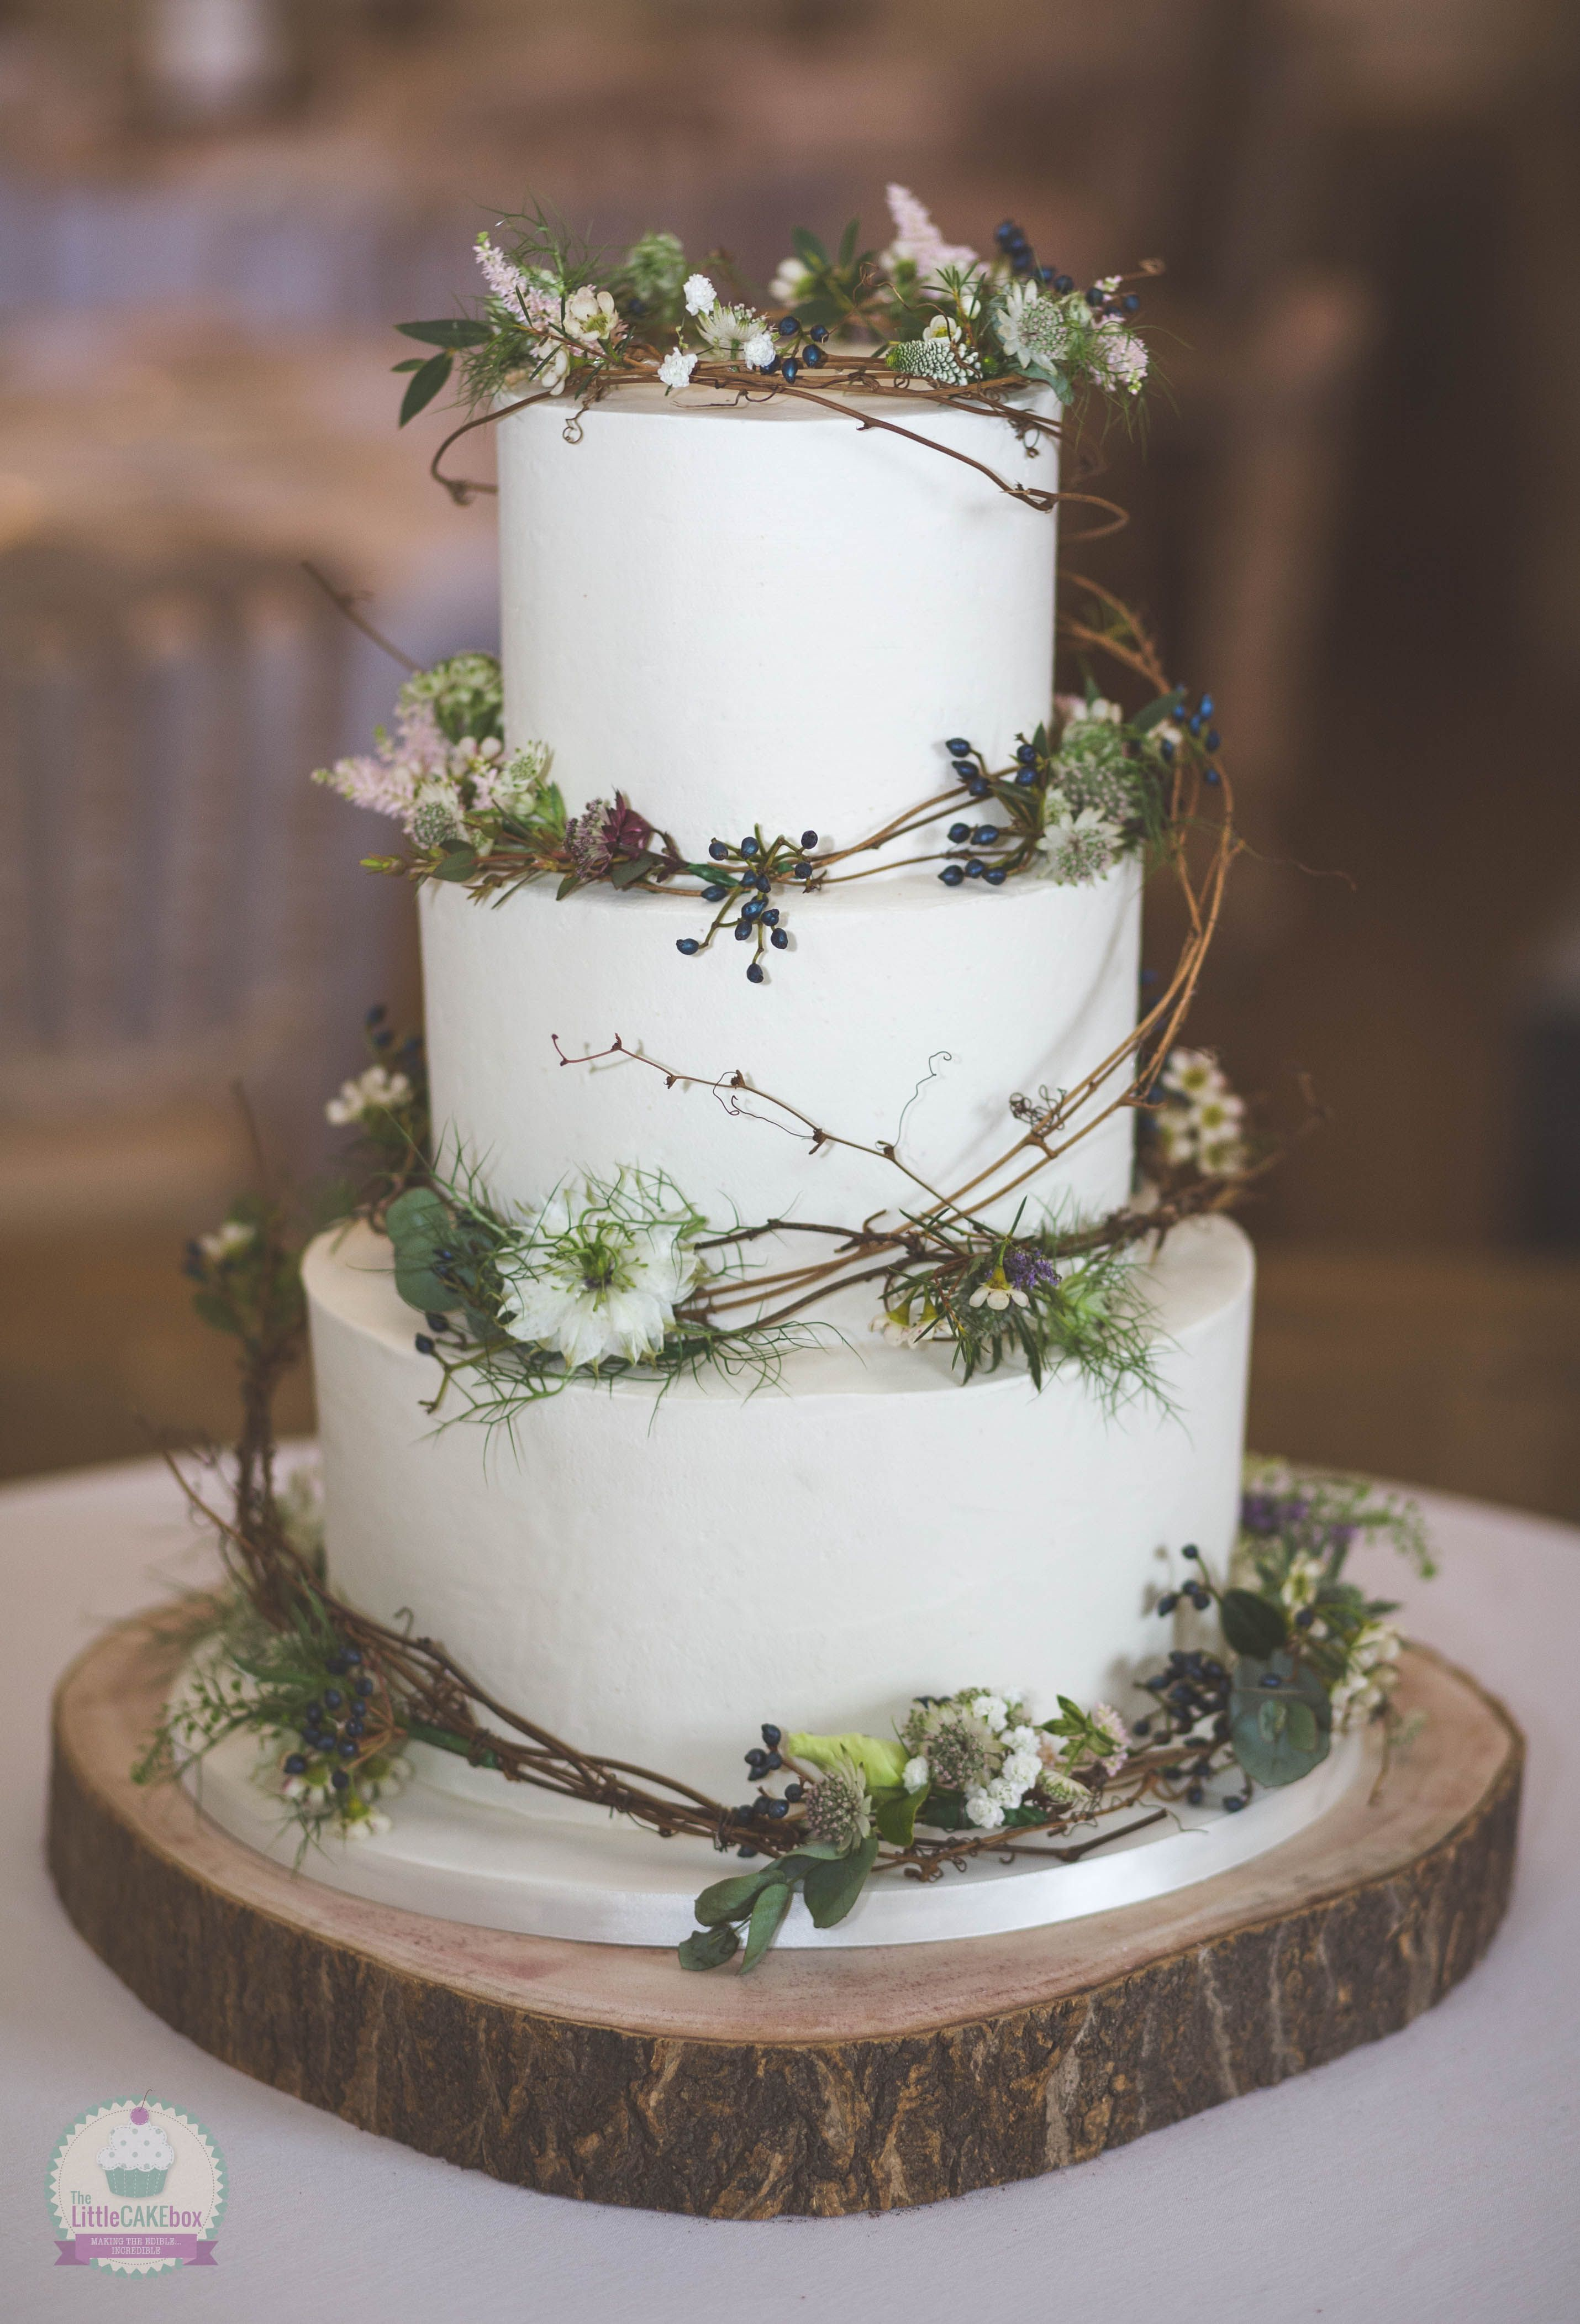 3 Tier Rustic Buttercream Wedding Cake With Fresh Flowers And